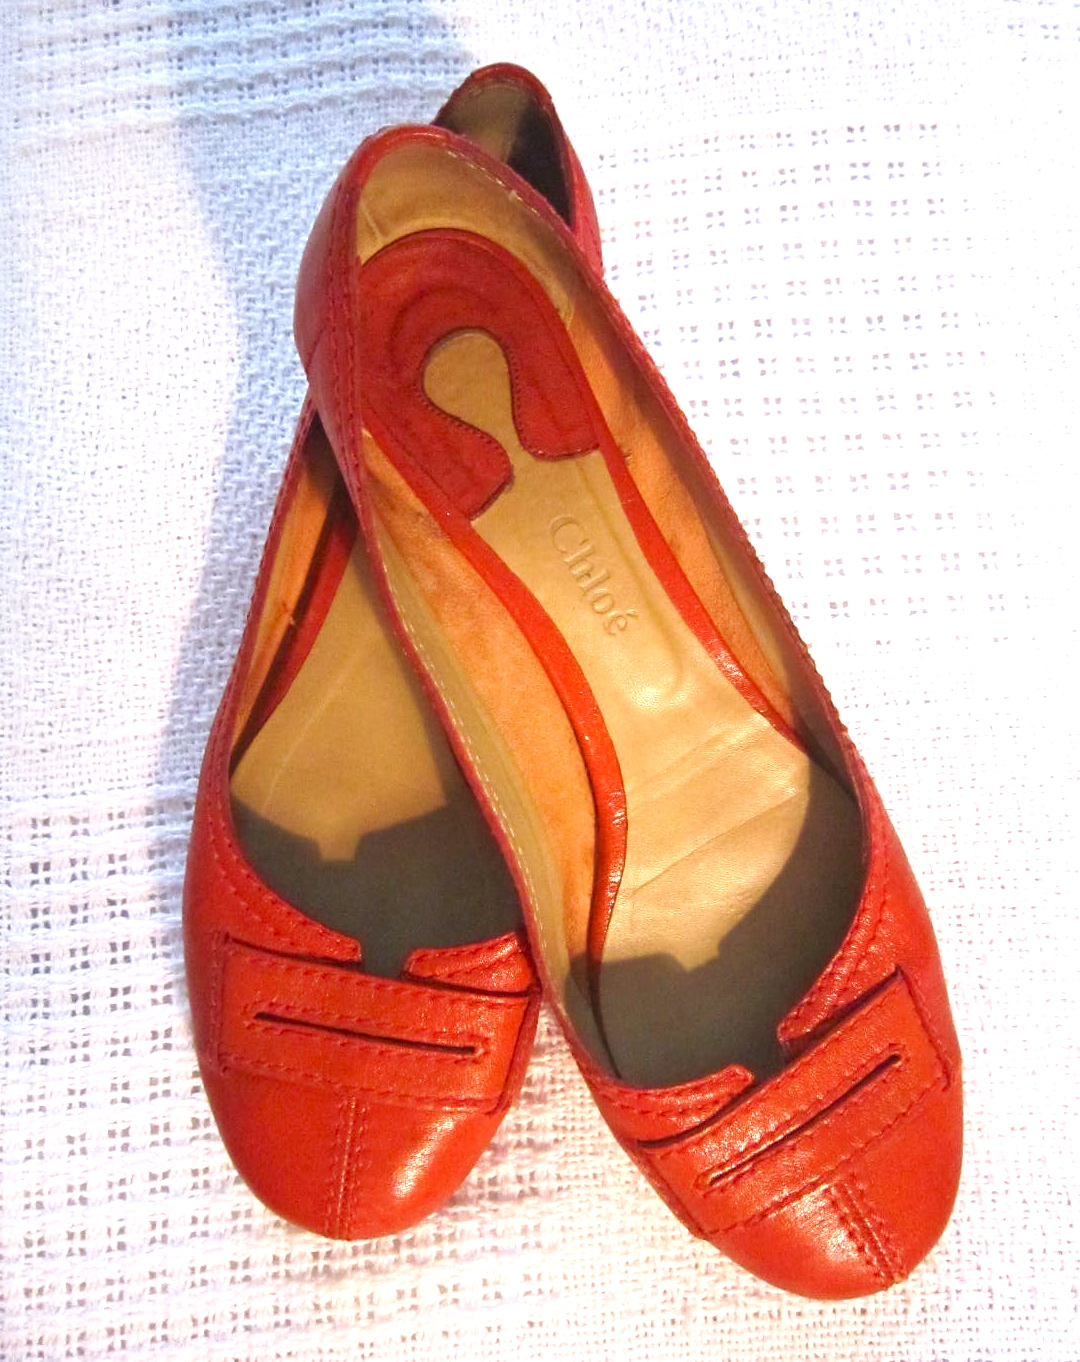 d4d293336bf8 Chloe Red Leather Ballerina Flats   Size 10 - Luxurylana Boutique